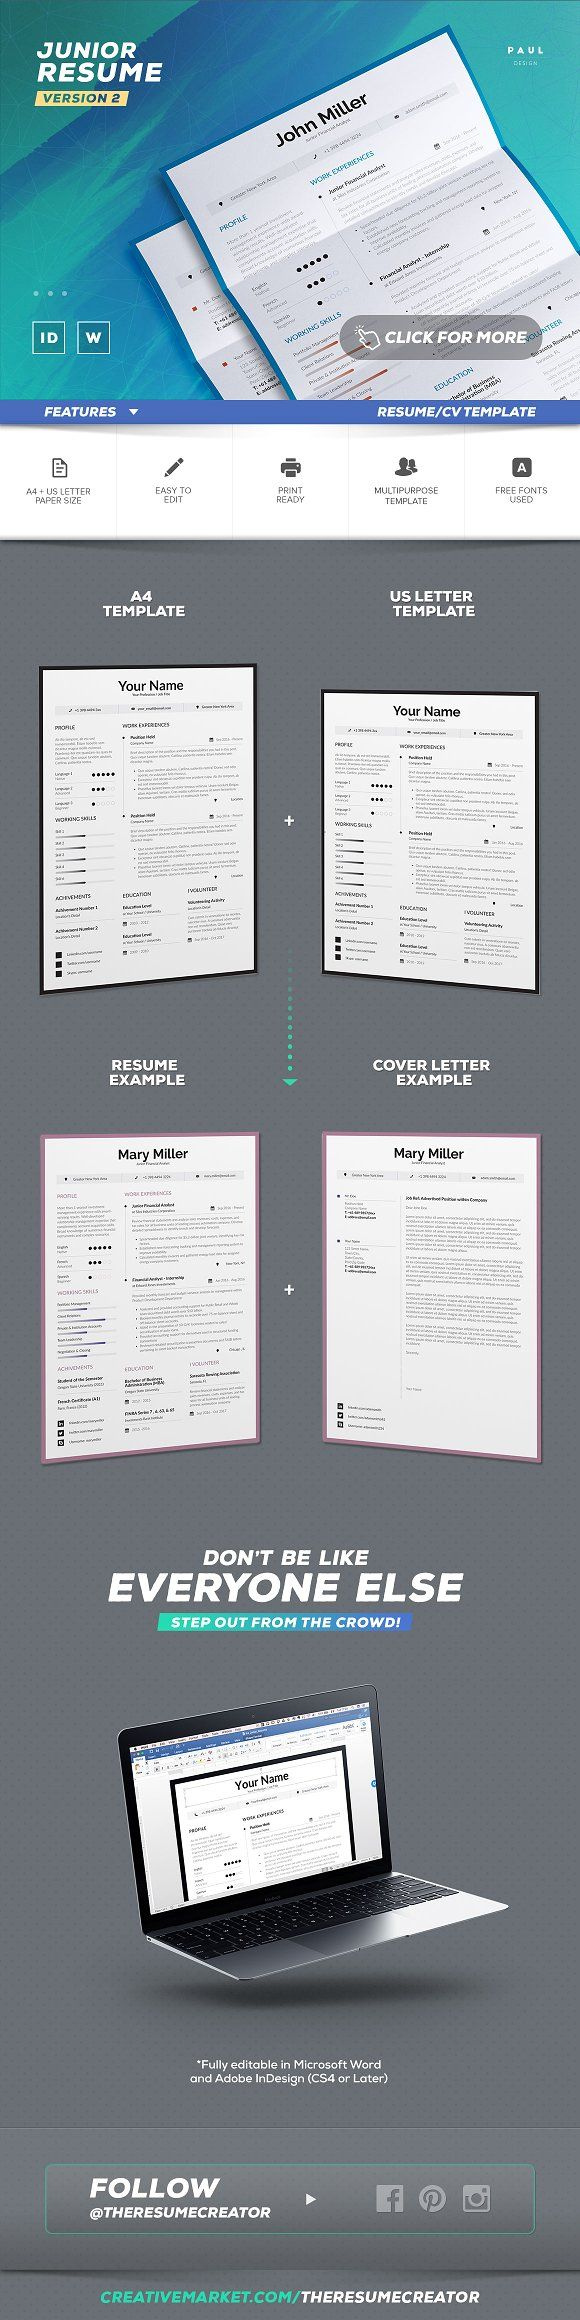 Word Cv Templates 2007%0A Junior Resume Cv Template  v   Graphicsauthor